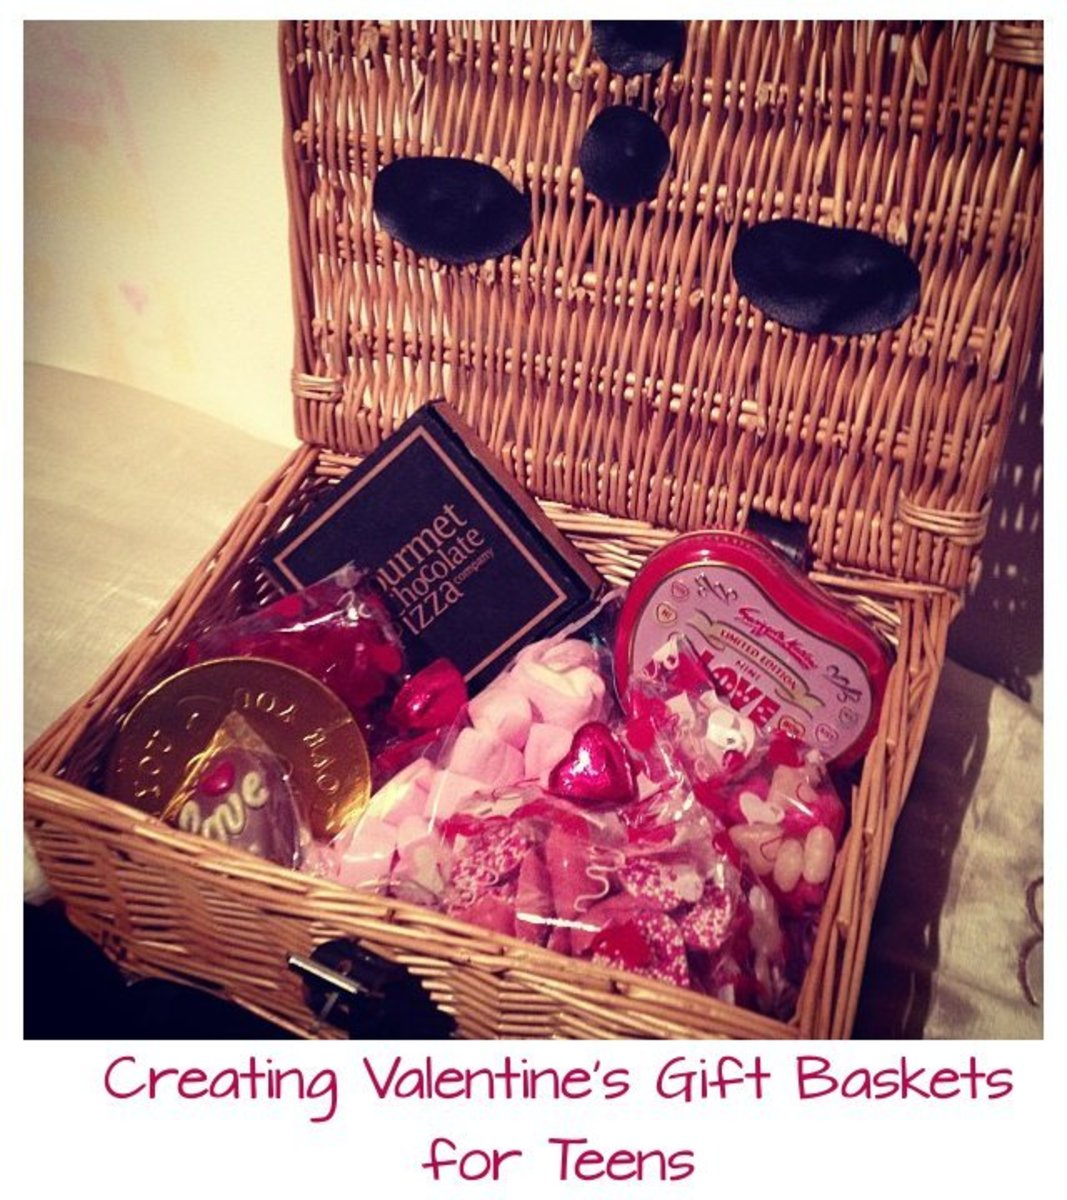 Not happens)))) gift basket for teen